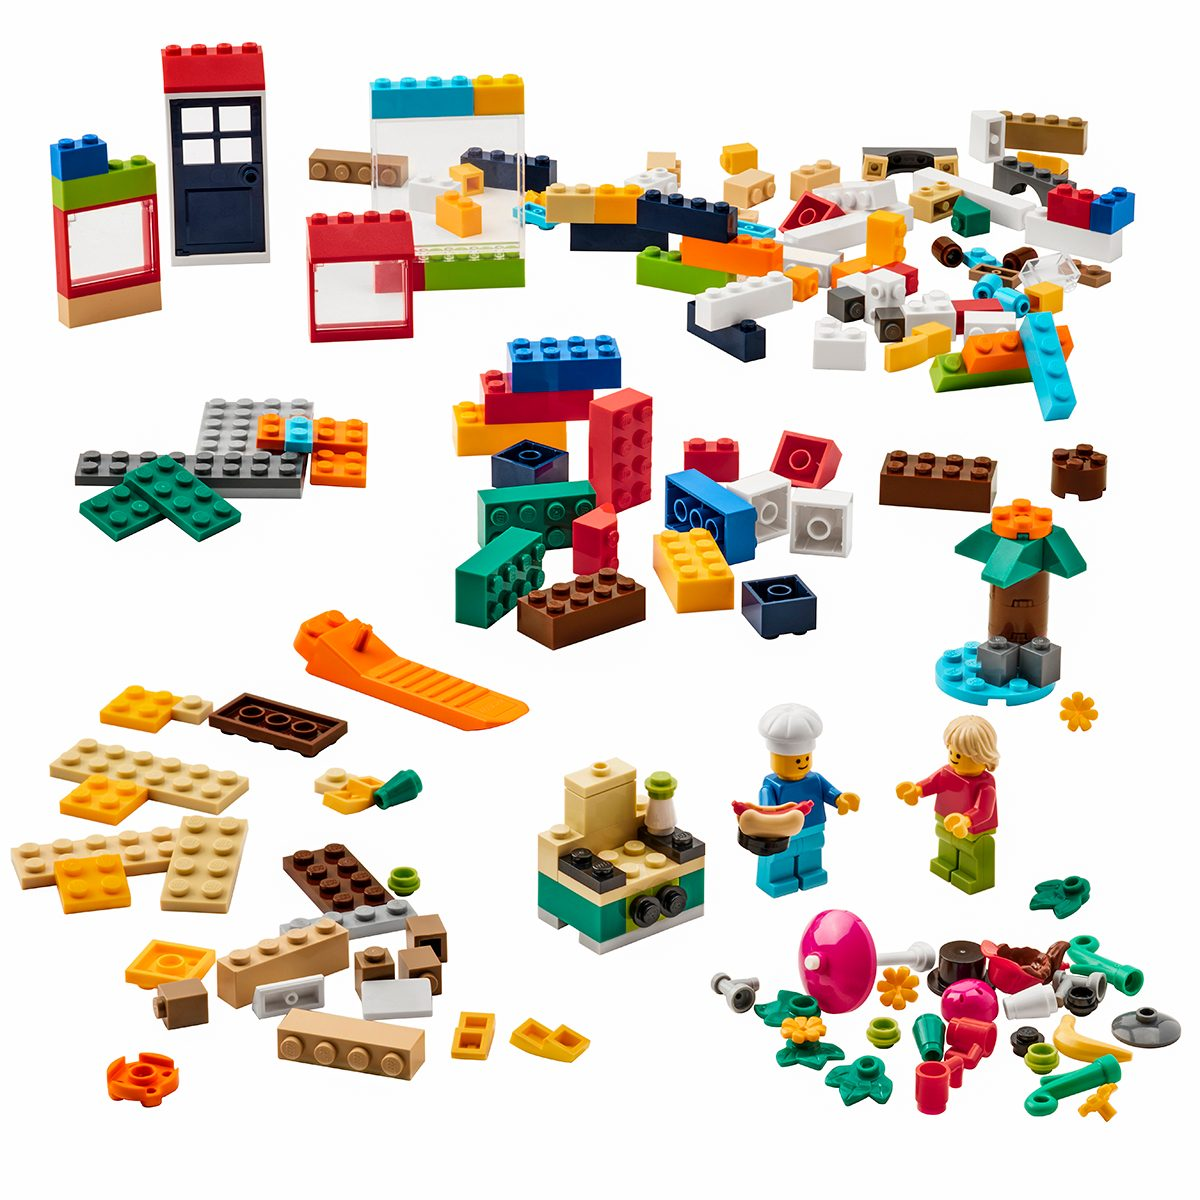 IKEA LEGO Bygglek Collection LEGO brick set